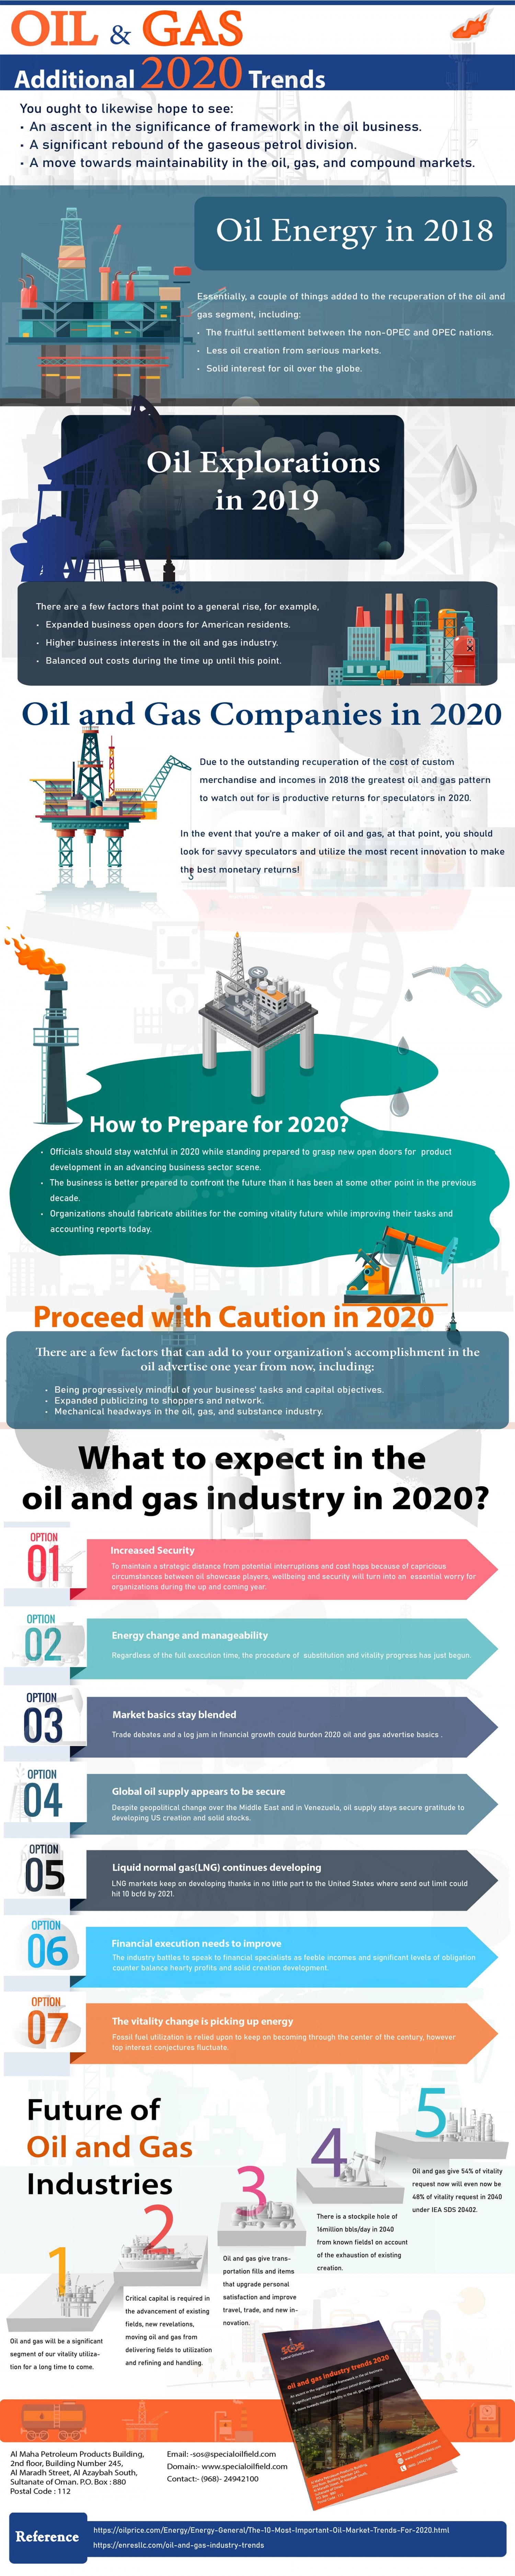 What to expect in the oil and gas industry in 2020? Infographic